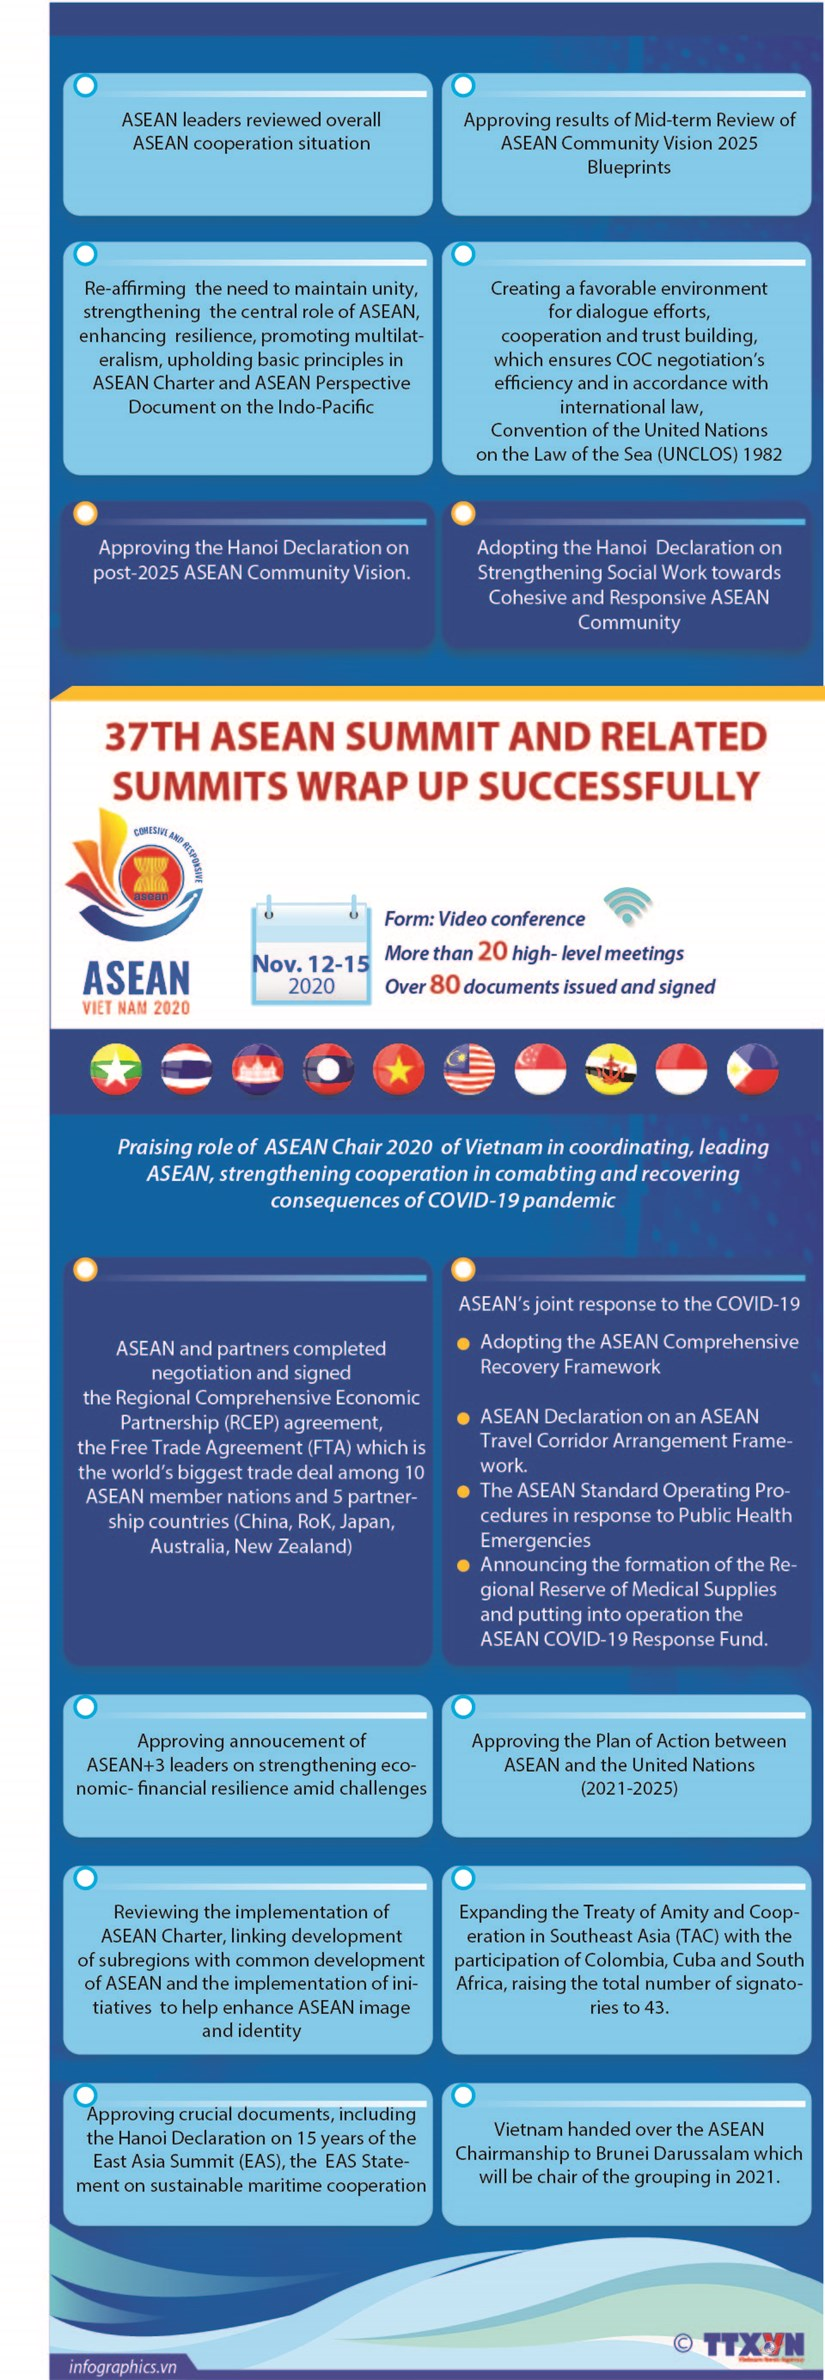 37th ASEAN Summit and related summits wrap up successully hinh anh 1